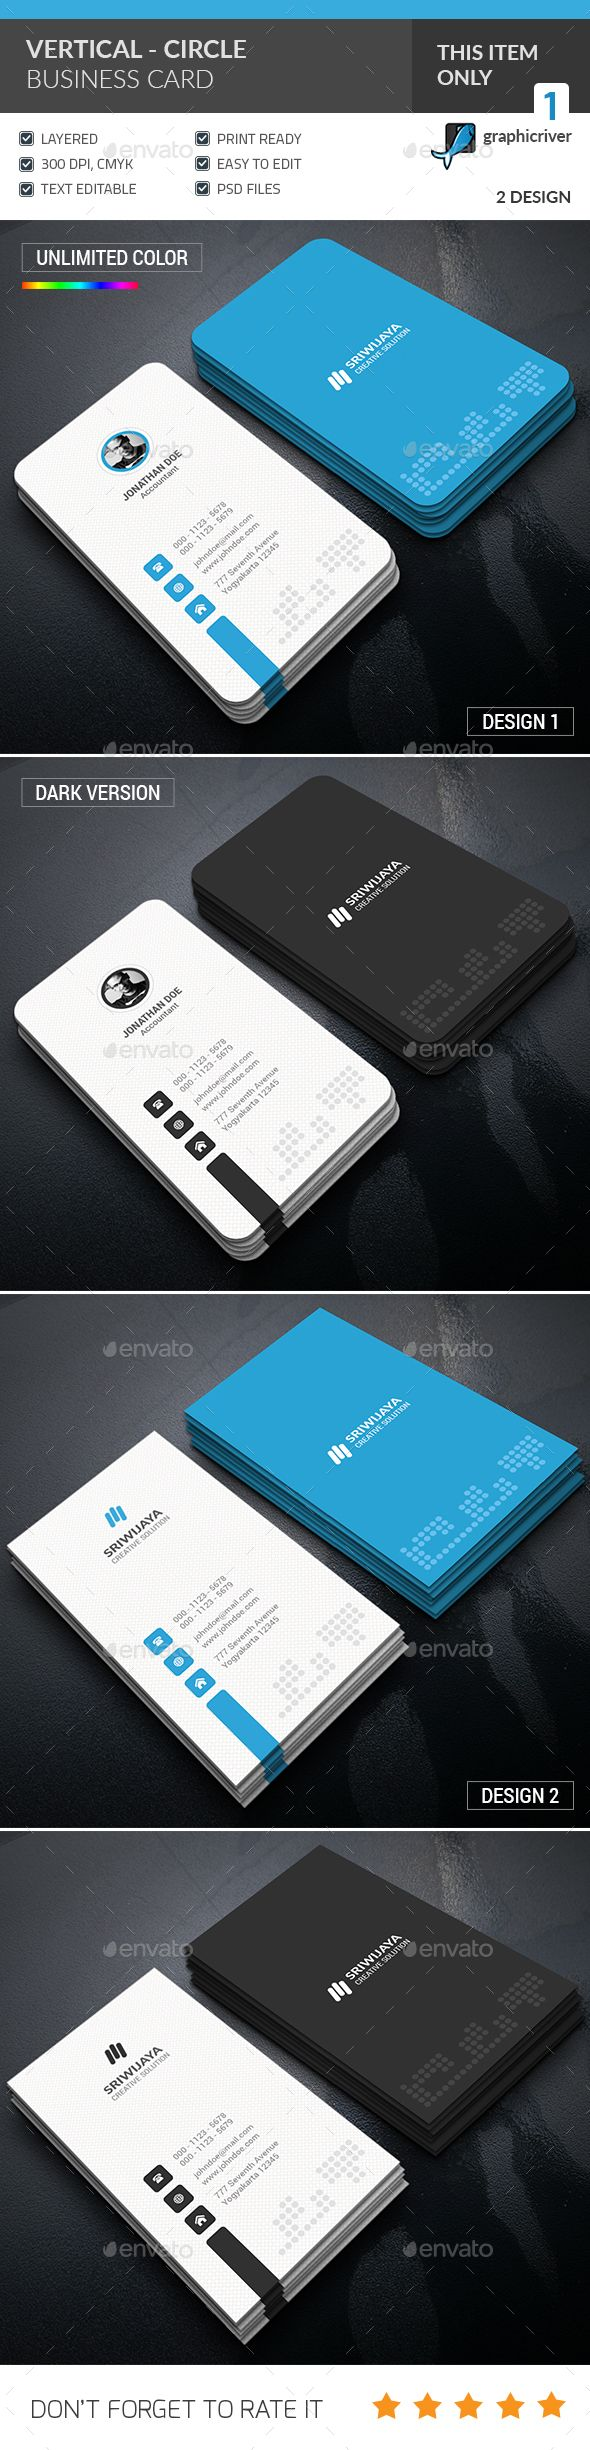 Vertical Circle Business Card Template PSD. Download here: graphicriver.net/… – Business Card Templates